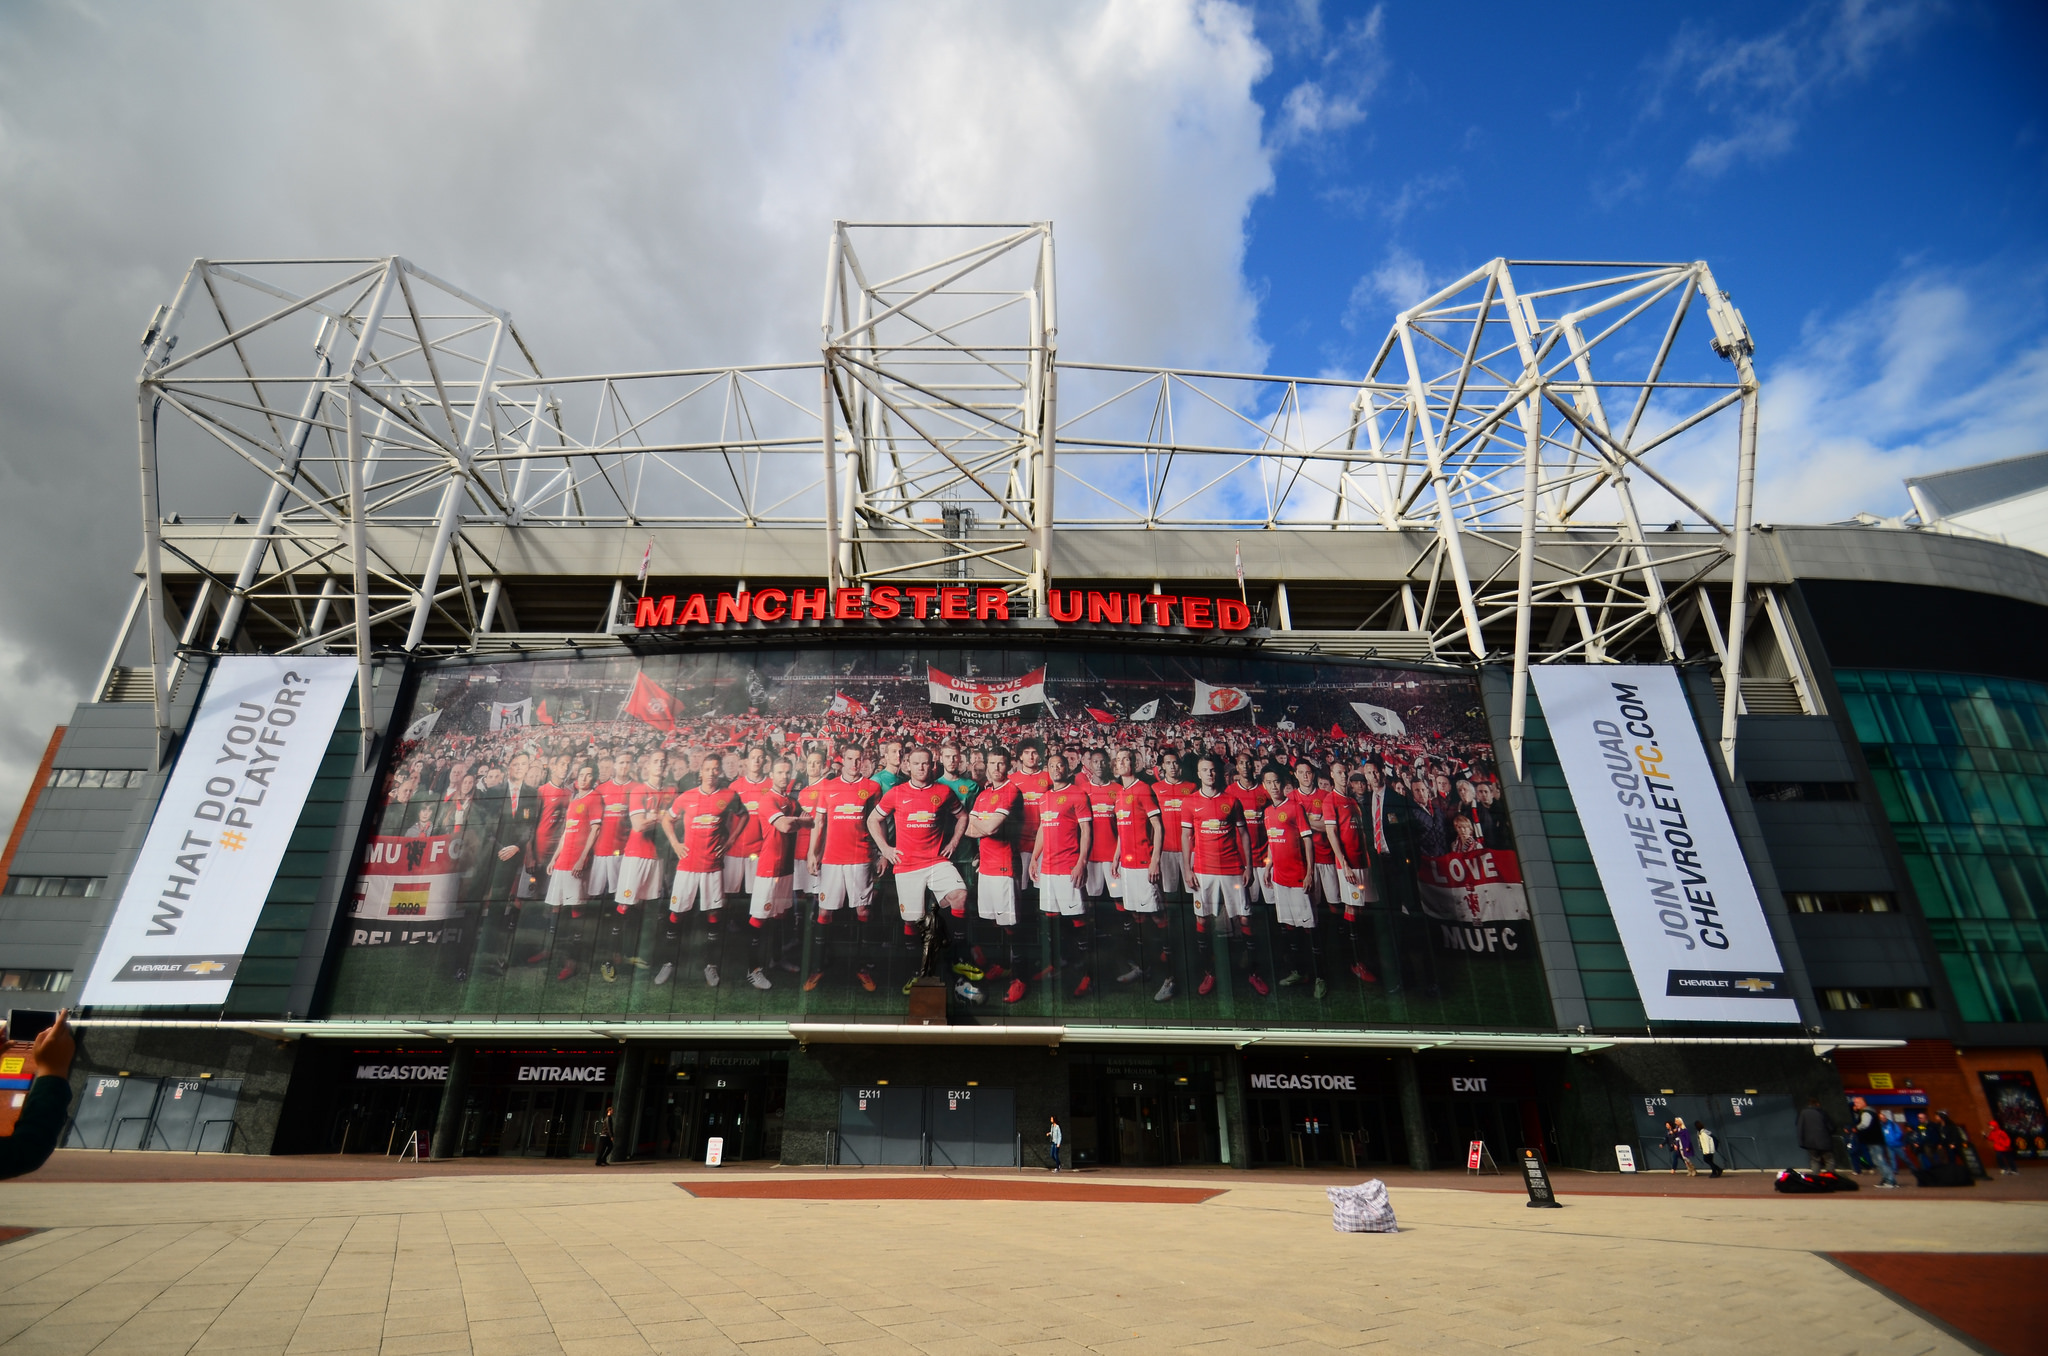 - Manchester Thousand Old - Stadium Trafford Wonders in